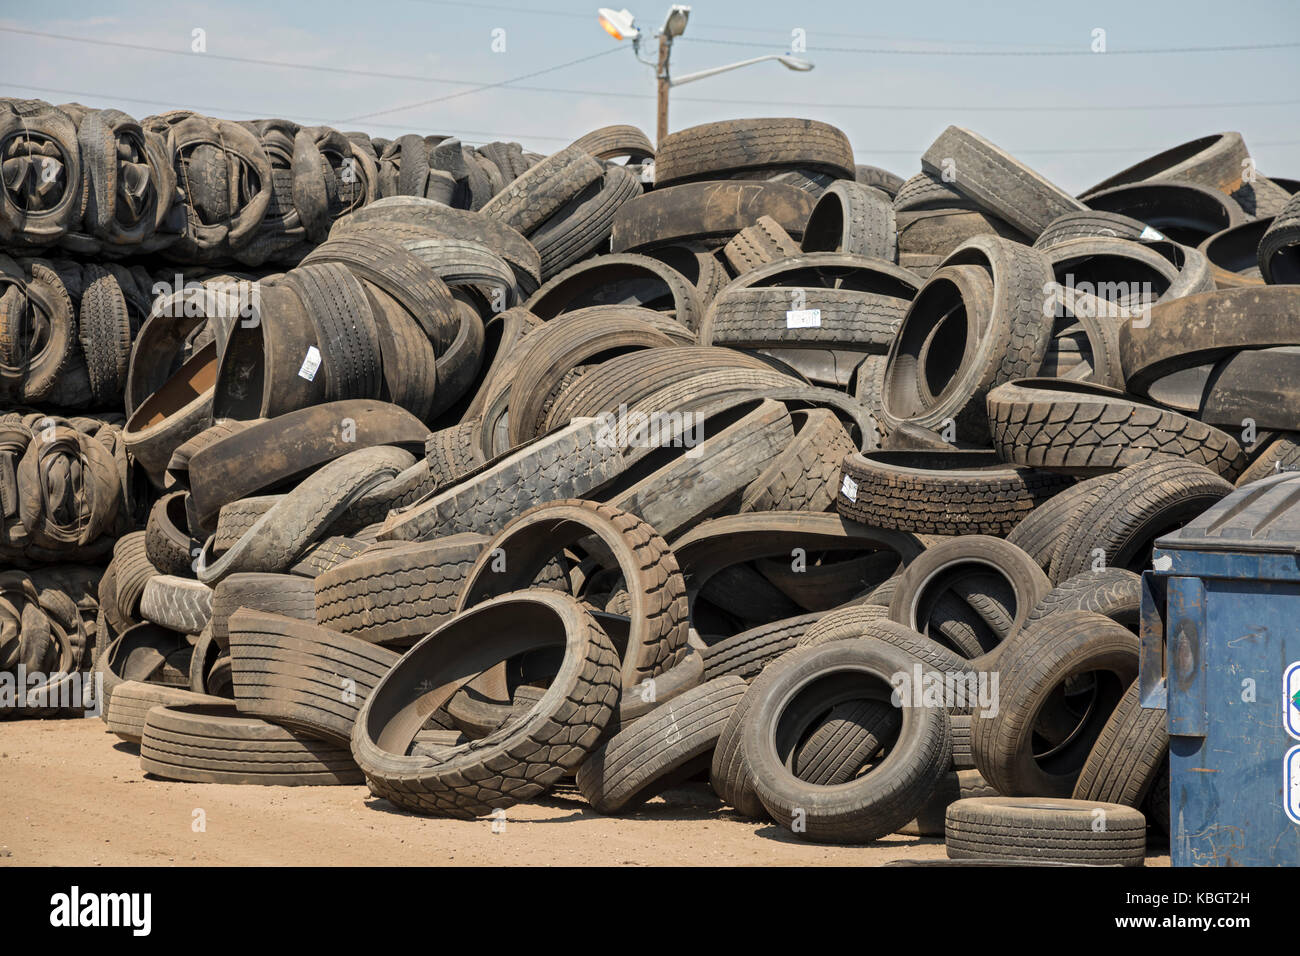 Used Tires Denver >> Denver Colorado Used Tires Piled Up At Colorado Tire Recycling